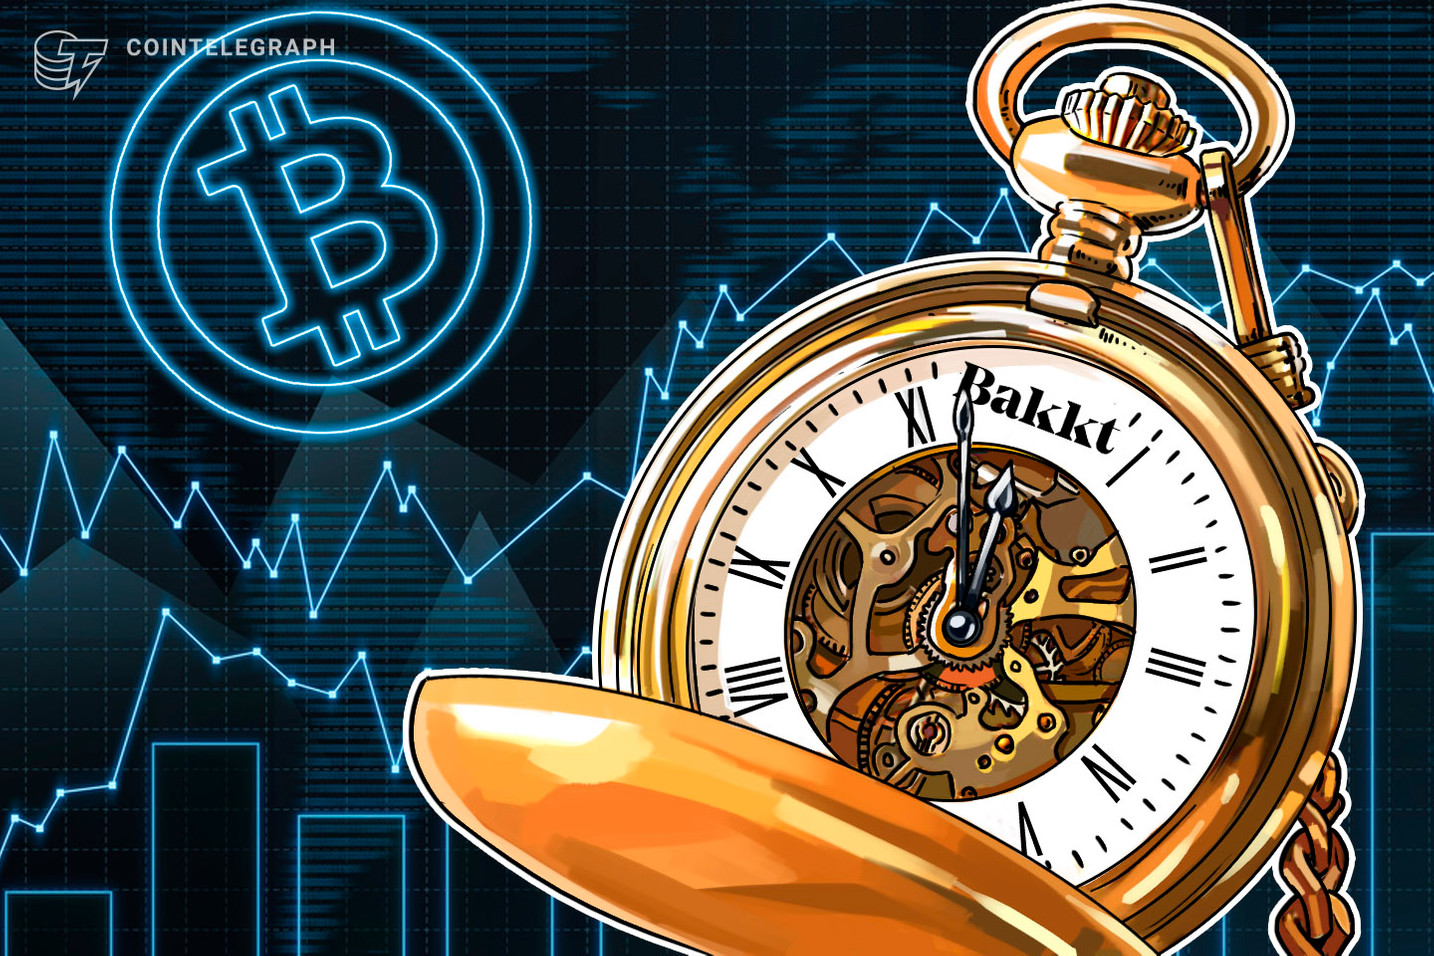 Bakkt Bitcoin Futures Open Interest Hits New All-Time High of $6.54M